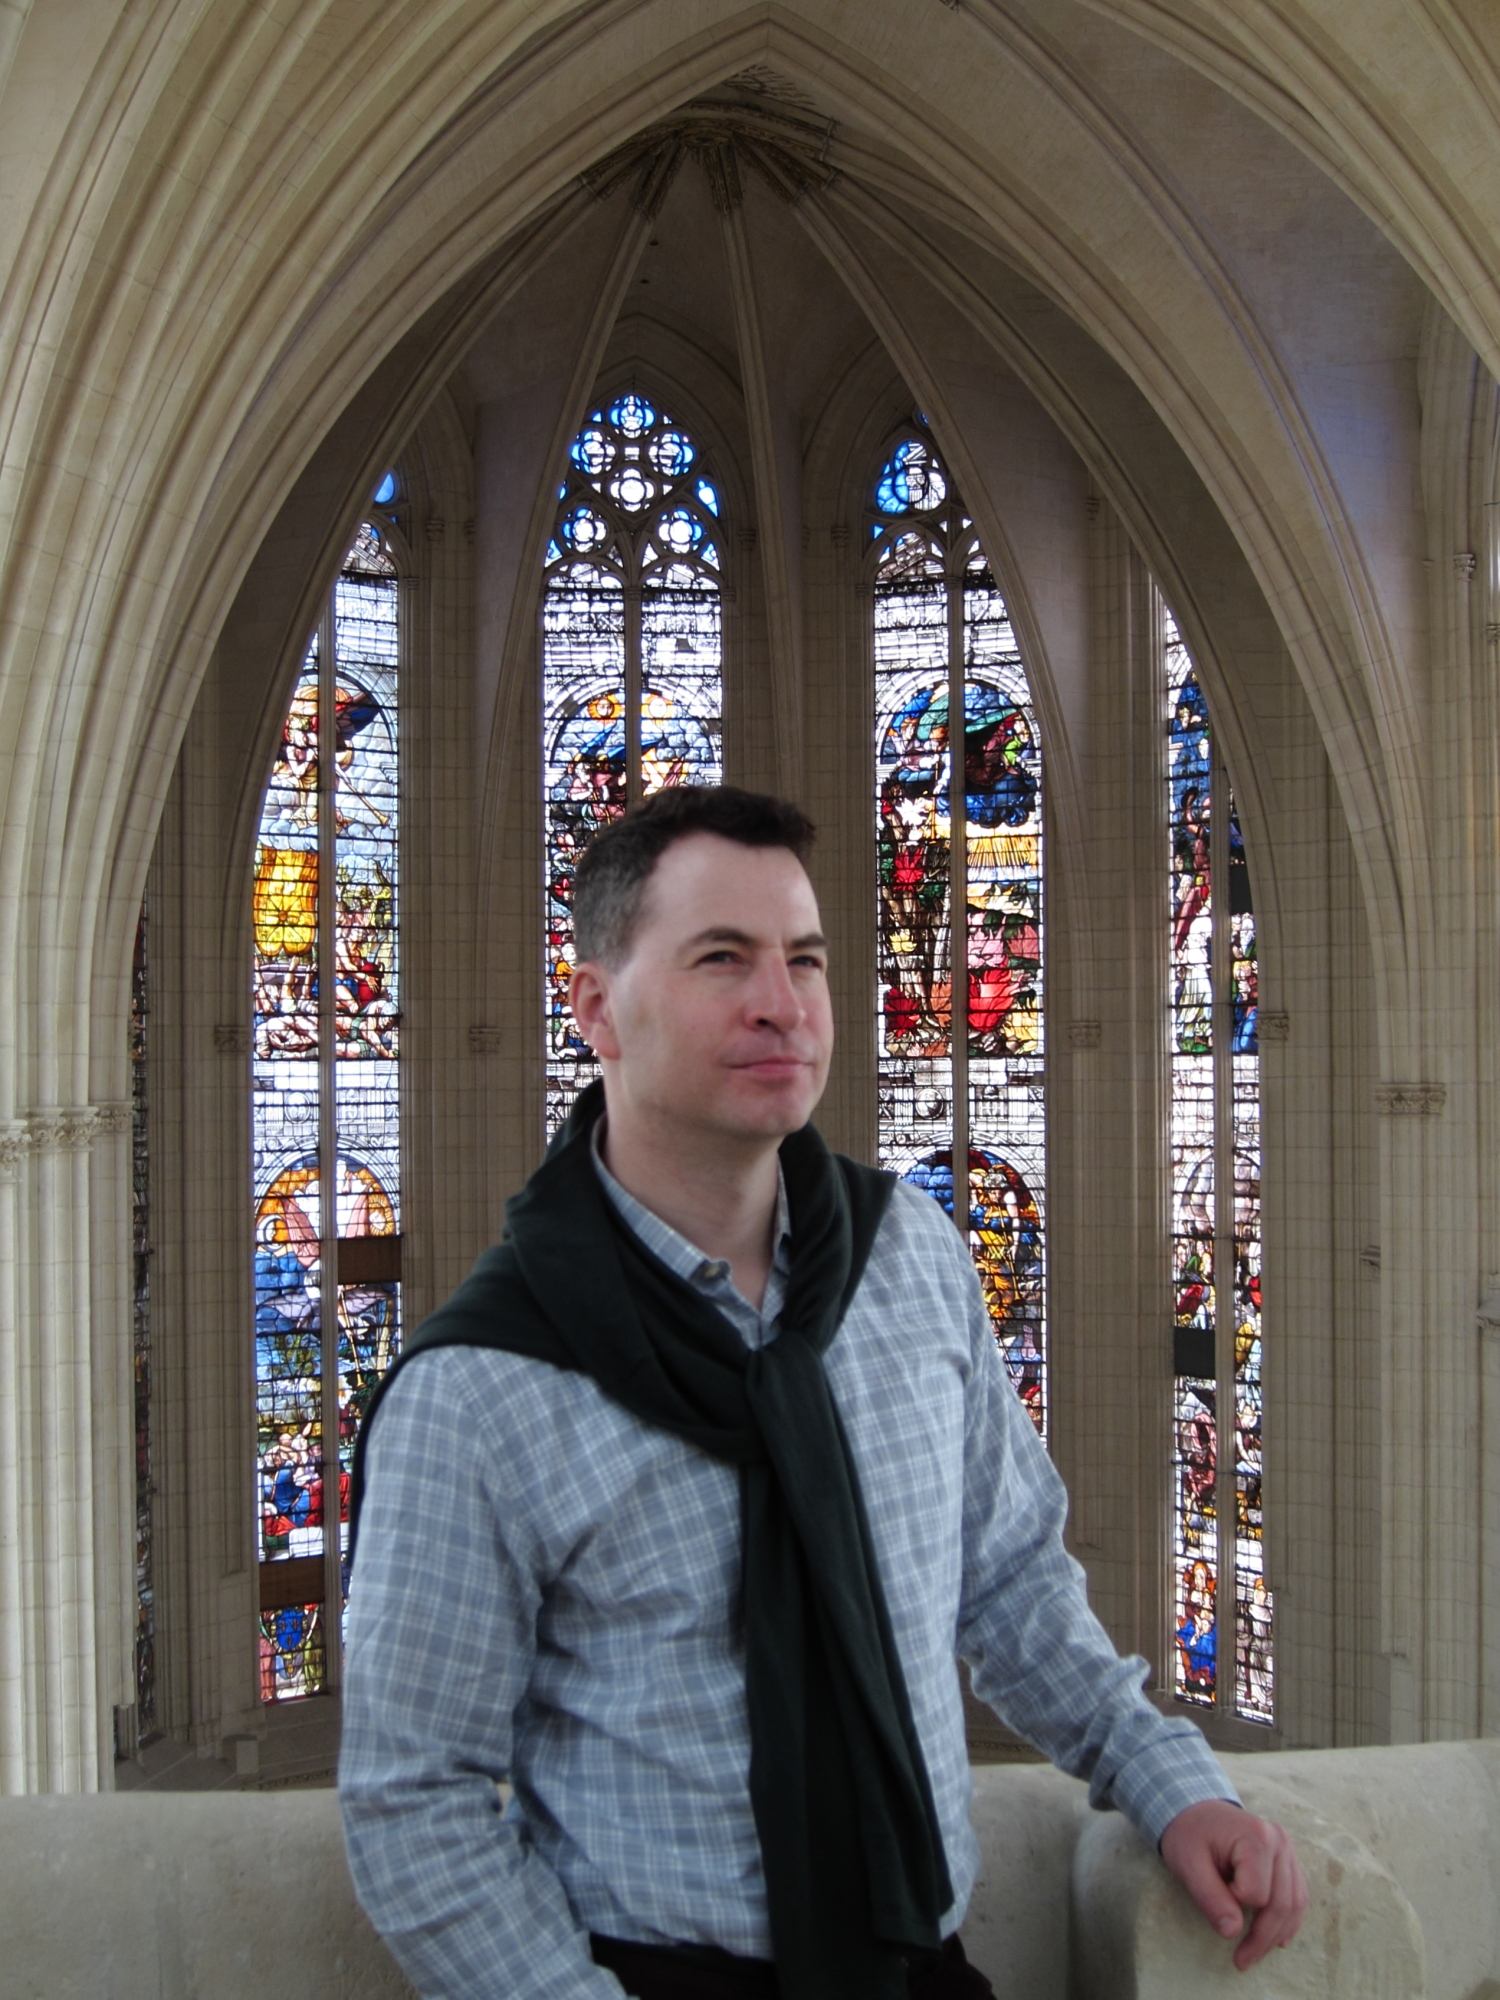 Jason in the chapel of the Château de Vincennes, considering whether to convert to Catholicism. (He decided not to.)